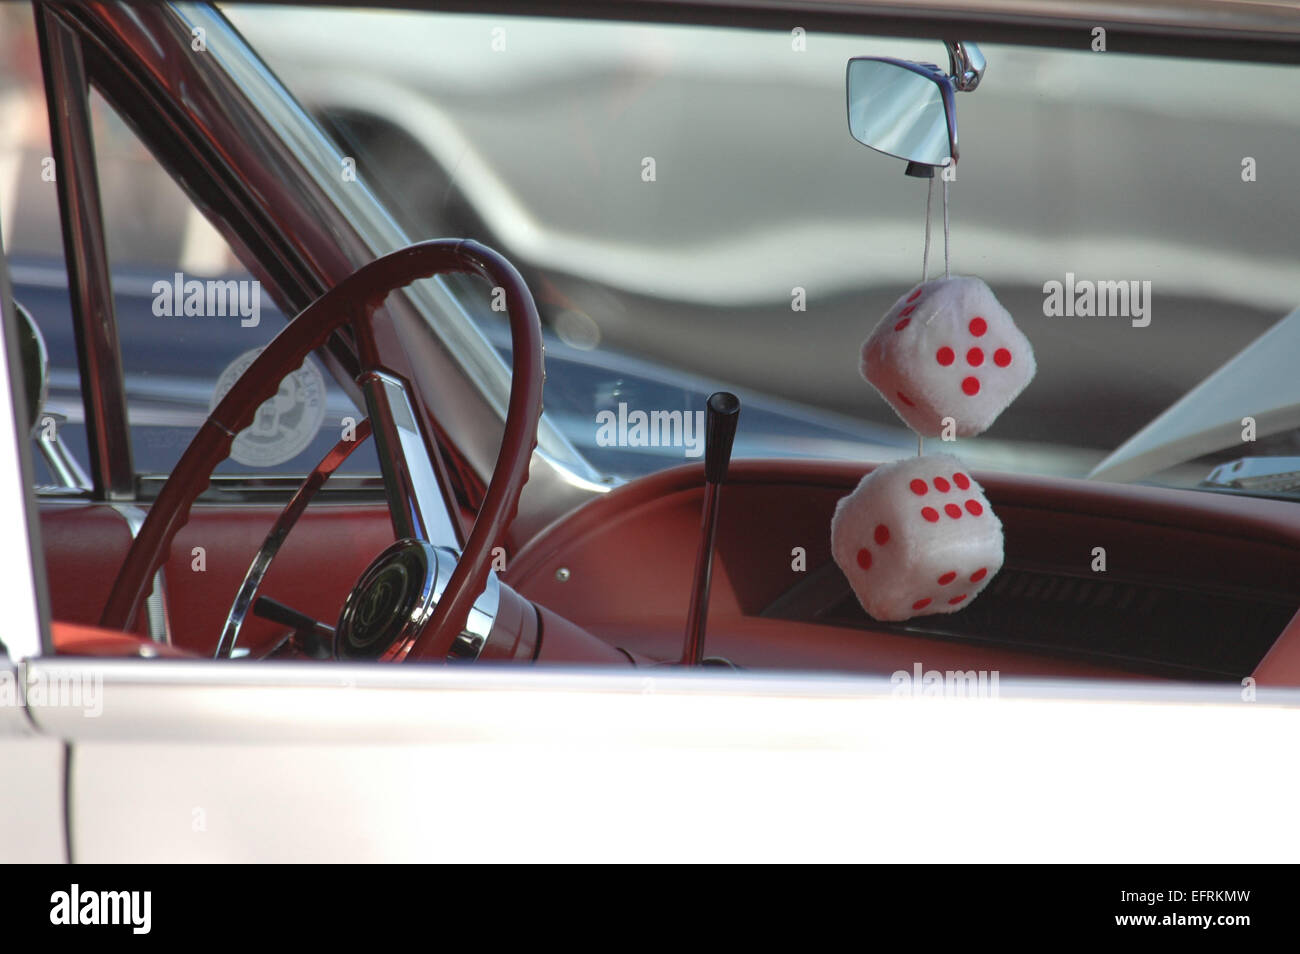 Car interior hanging - Interior Driver S Side Of Vintage Classic Car With Fuzzy Dice Hanging From The Rear View Mirror